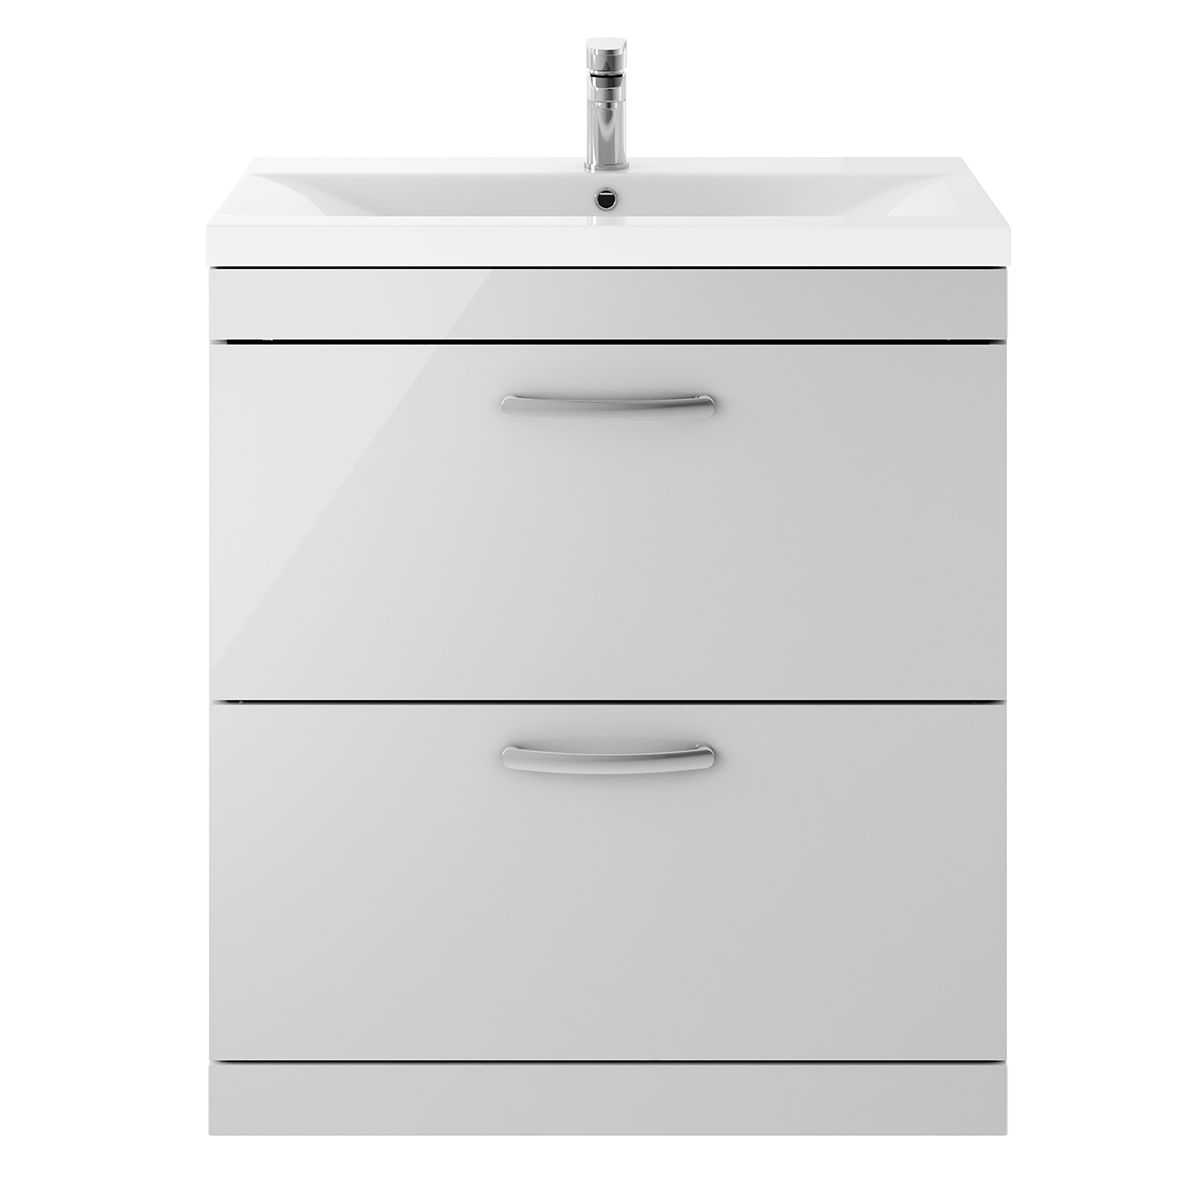 Nuie Athena Gloss Grey Mist 2 Drawer Floor Standing Unit 800mm with Mid Edge Basin